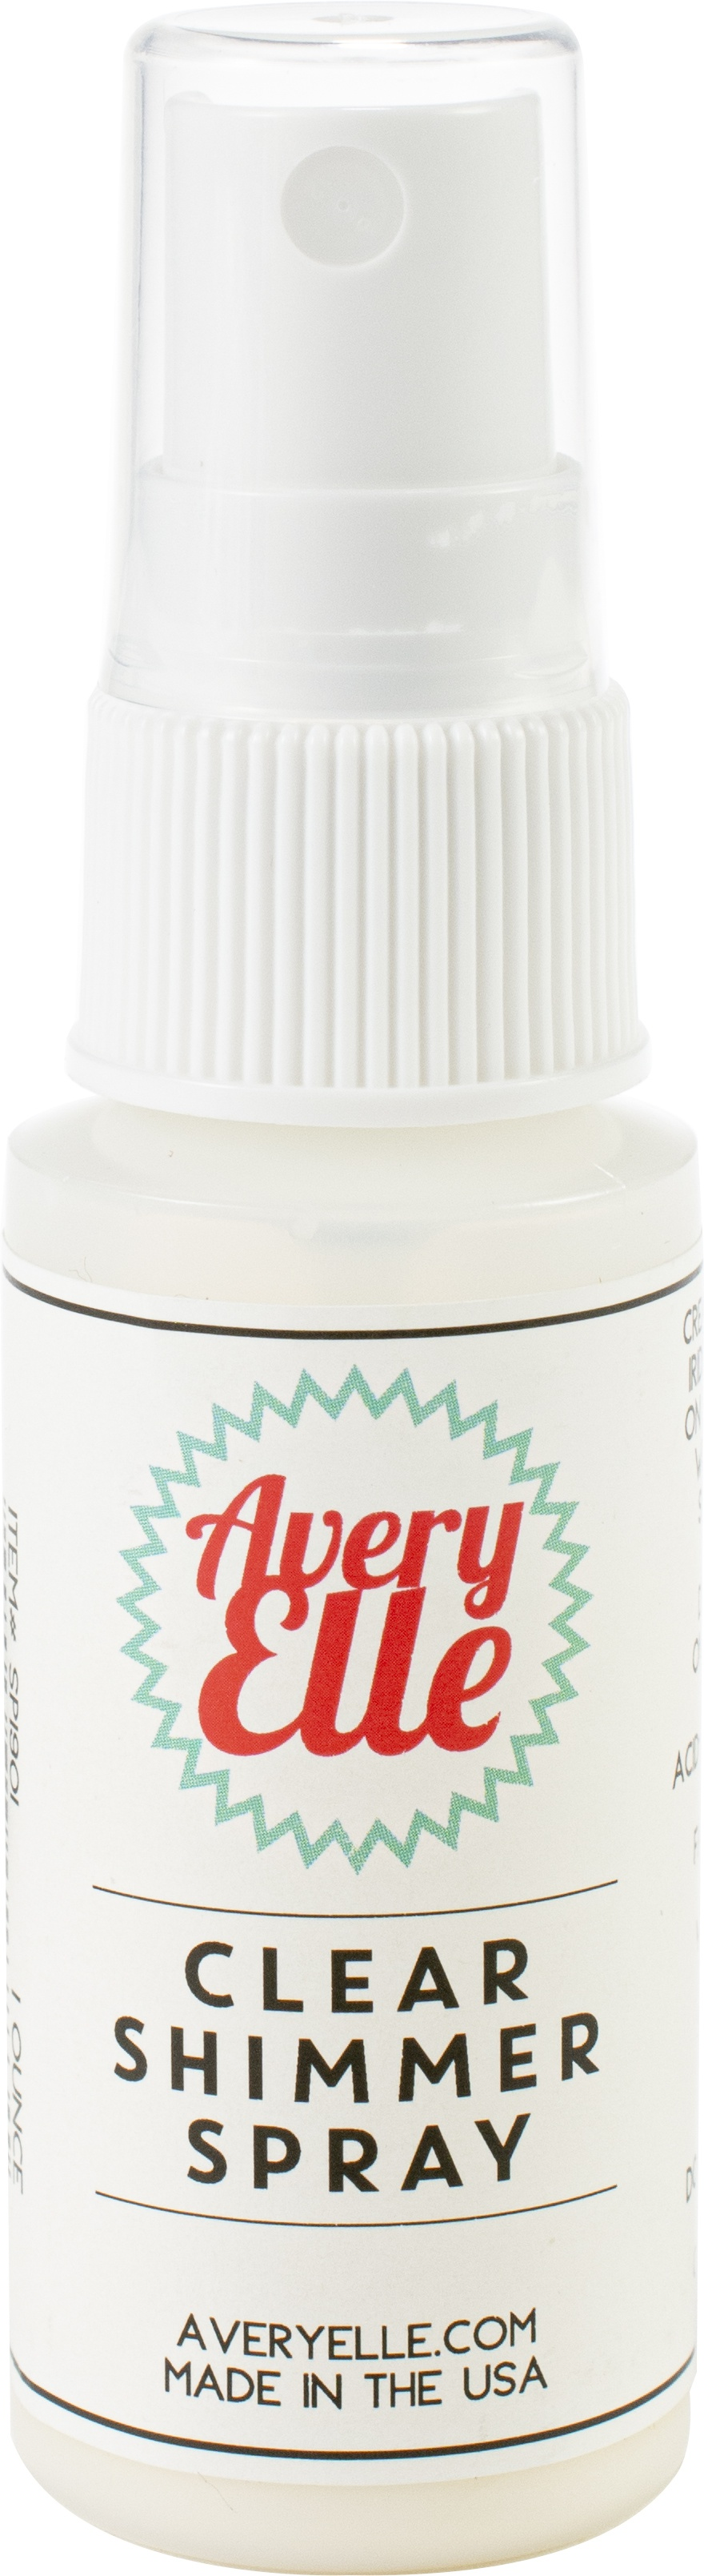 Avery Elle Shimmer Spray-Clear